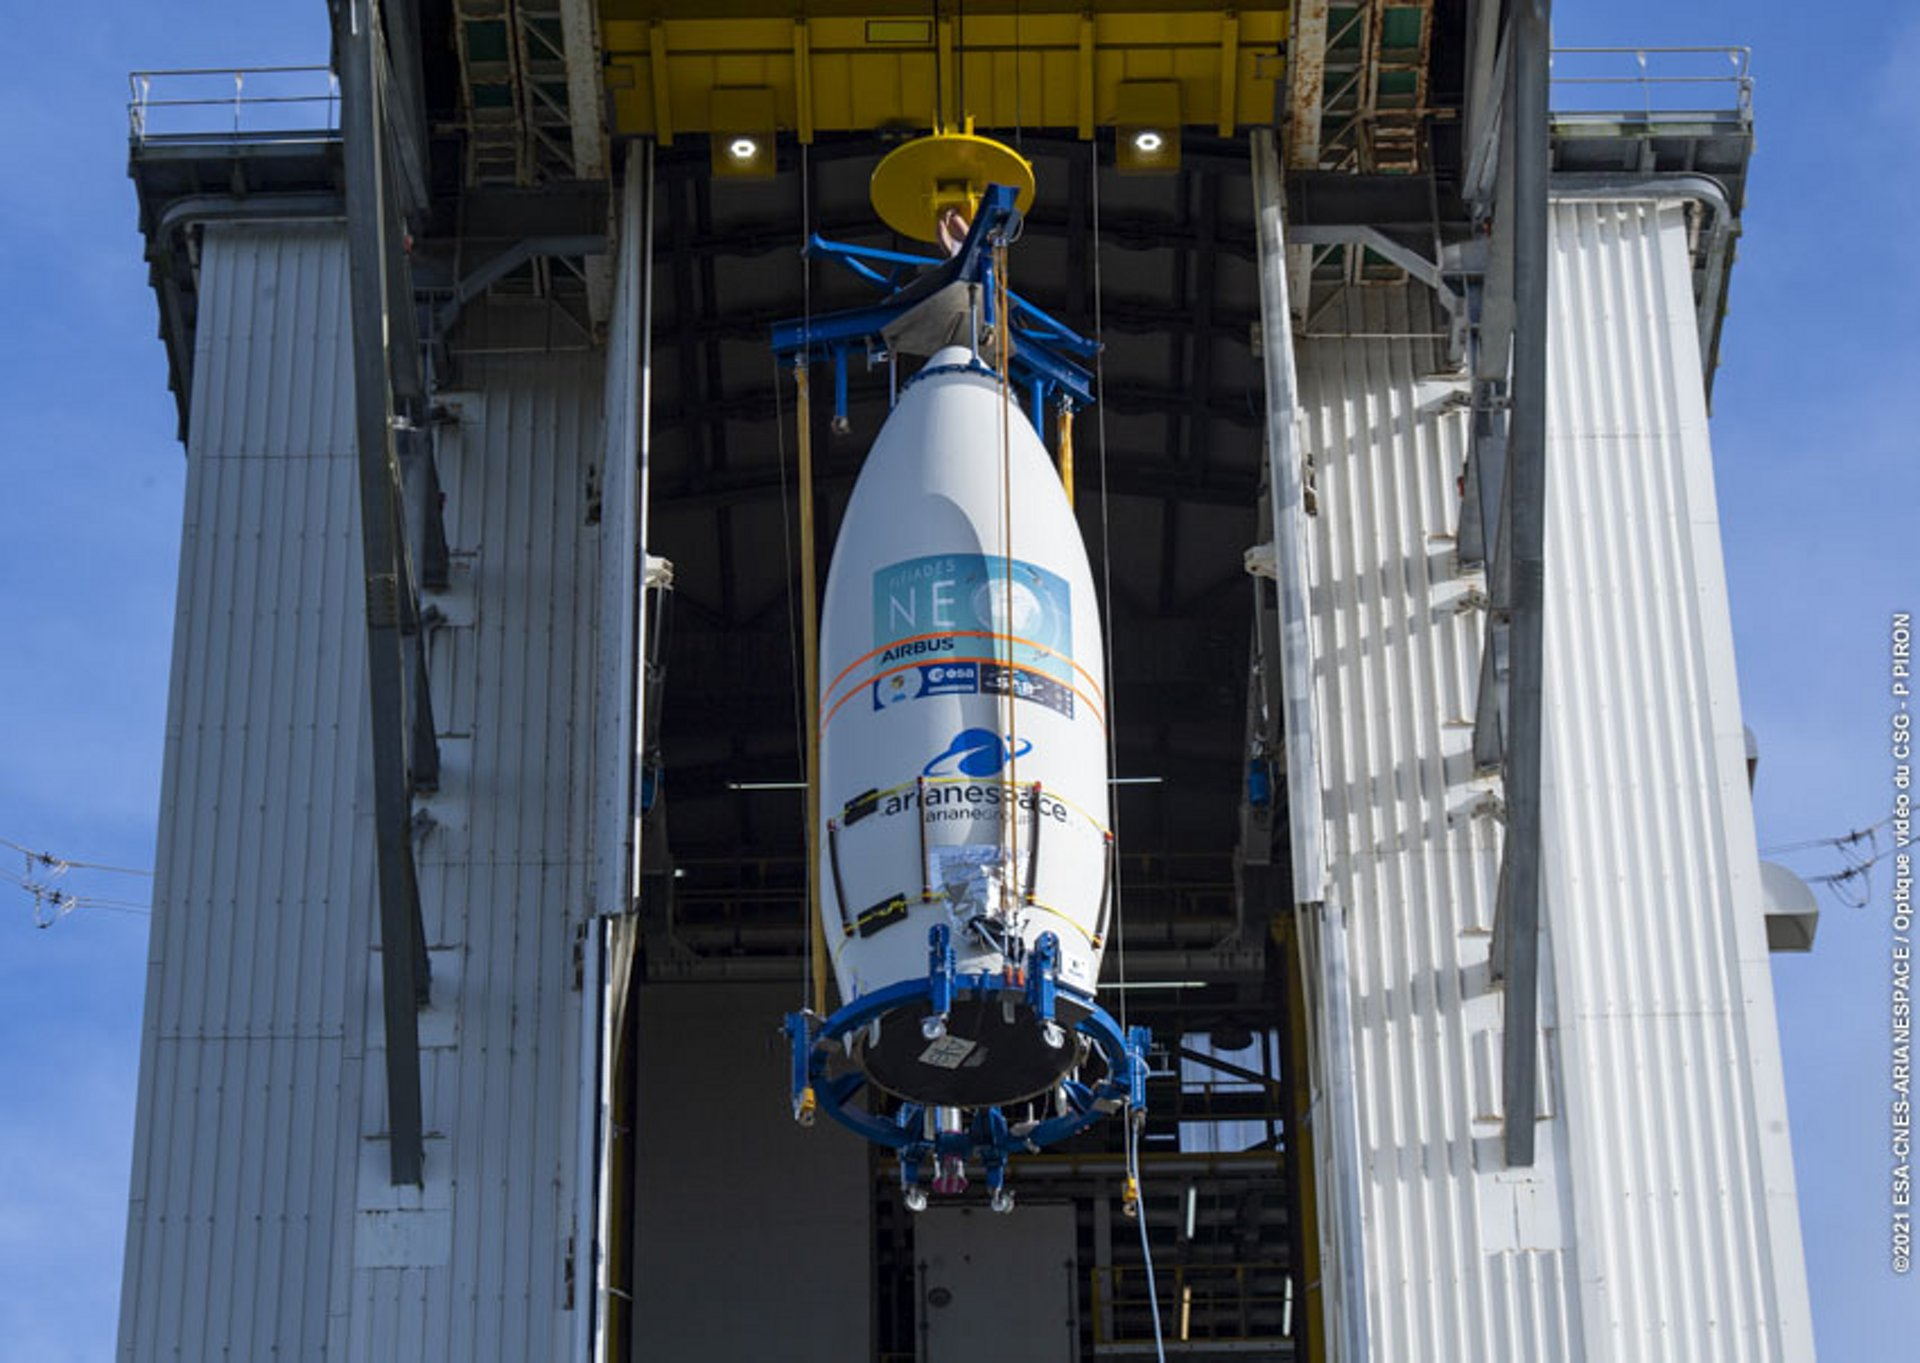 Pléiades Neo 4, the second satellite of the Pléiades Neo Earth observation constellation, was successfully launched by Arianespace's European launcher Vega from French Guiana last night. ©2021 ESA-CNES-ARIANESPACE